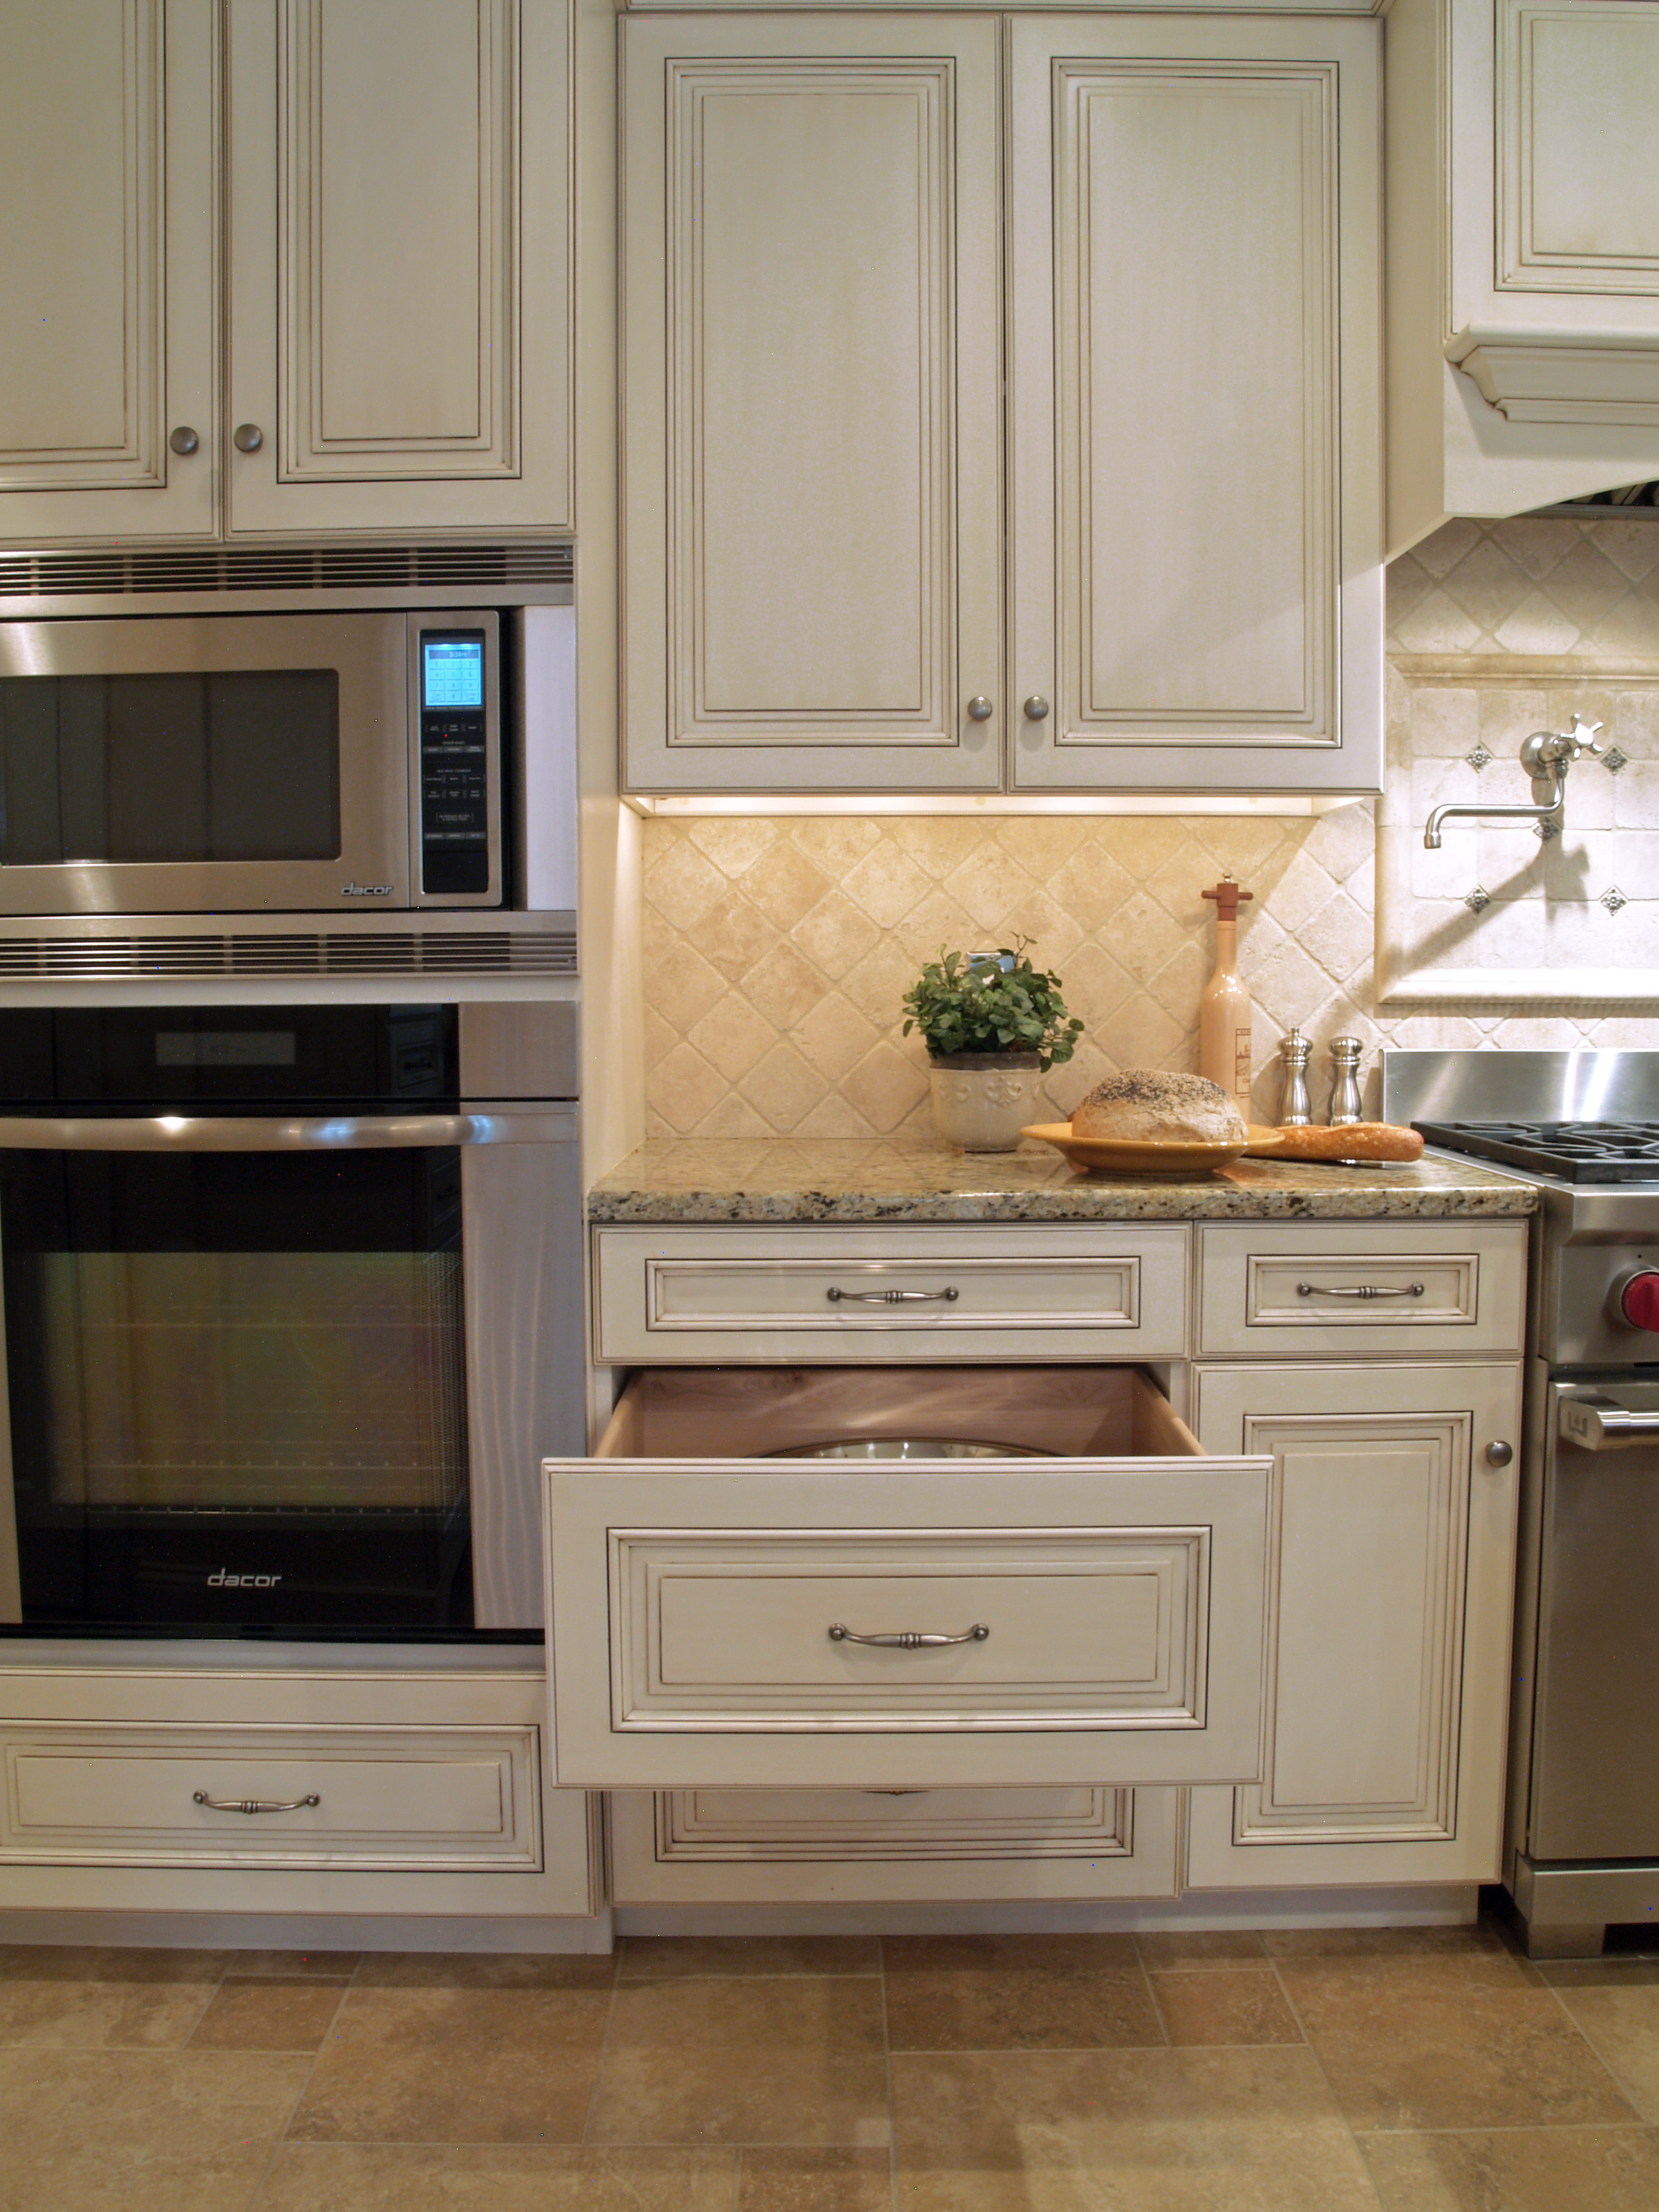 Oversized Kitchen Drawer for Pots and Pans Main Line Kitchen ... on kitchen desk ideas, kitchen granite ideas, kitchen pantry ideas, kitchen floor tile, kitchen renovations product, kitchen cream cabinets with glaze, kitchen space savers, bedroom ideas, kitchen cabinets from ikea, kitchen shelving ideas, entertainment center ideas, kitchen remodeling product, kitchen remodeling ideas, kitchen sink faucets, kitchen cabinetry product, kitchen carts for small kitchens, kitchen islands, kitchen windows, creative small kitchen ideas, kitchen layout ideas,